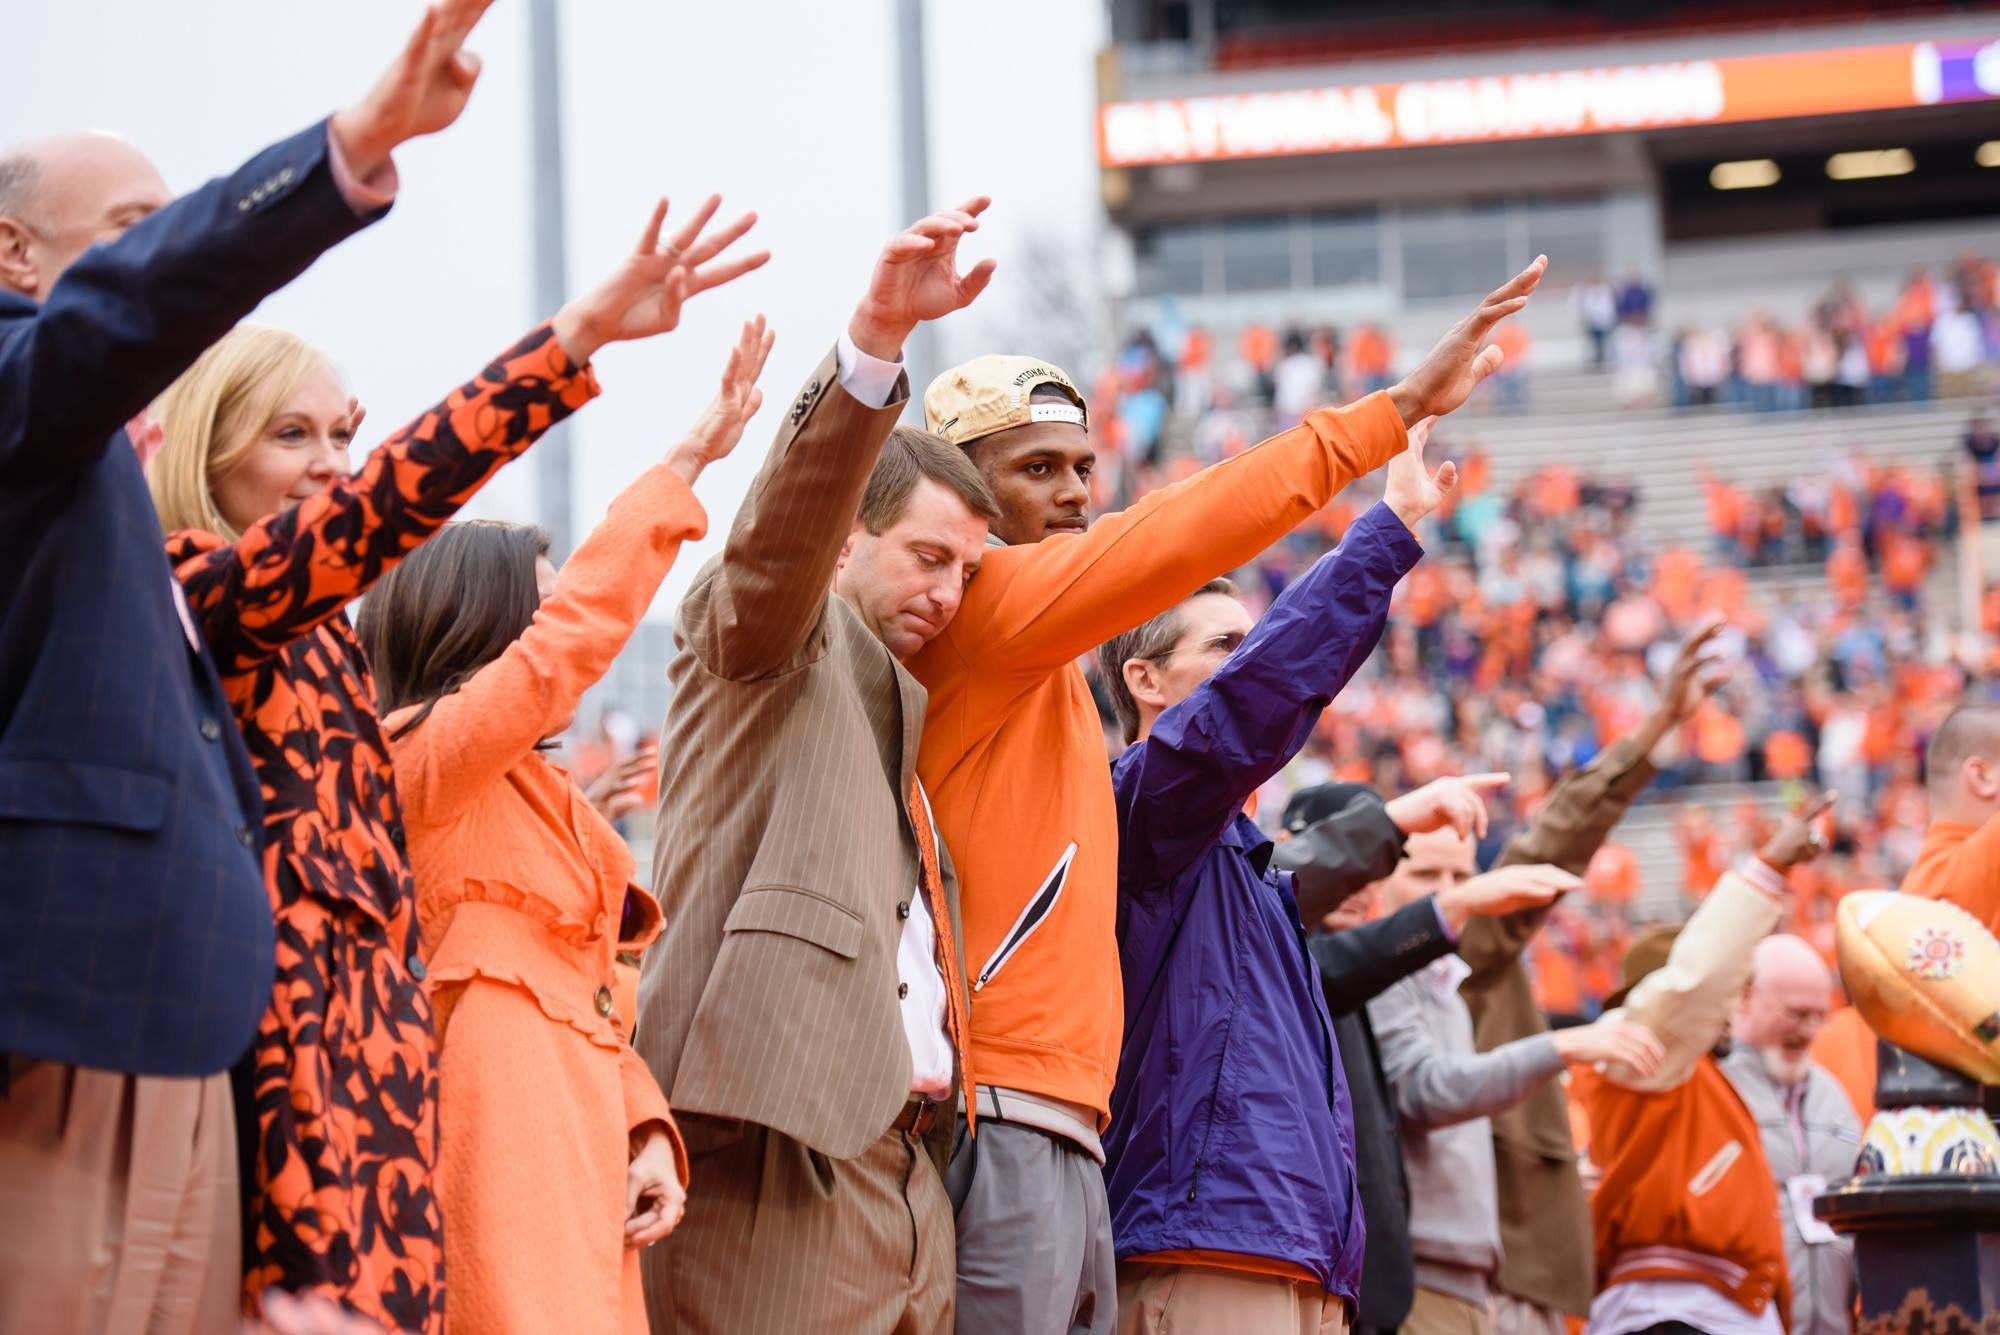 Pin by Cathy Nunnery on Clemson/Tailgating Clemson